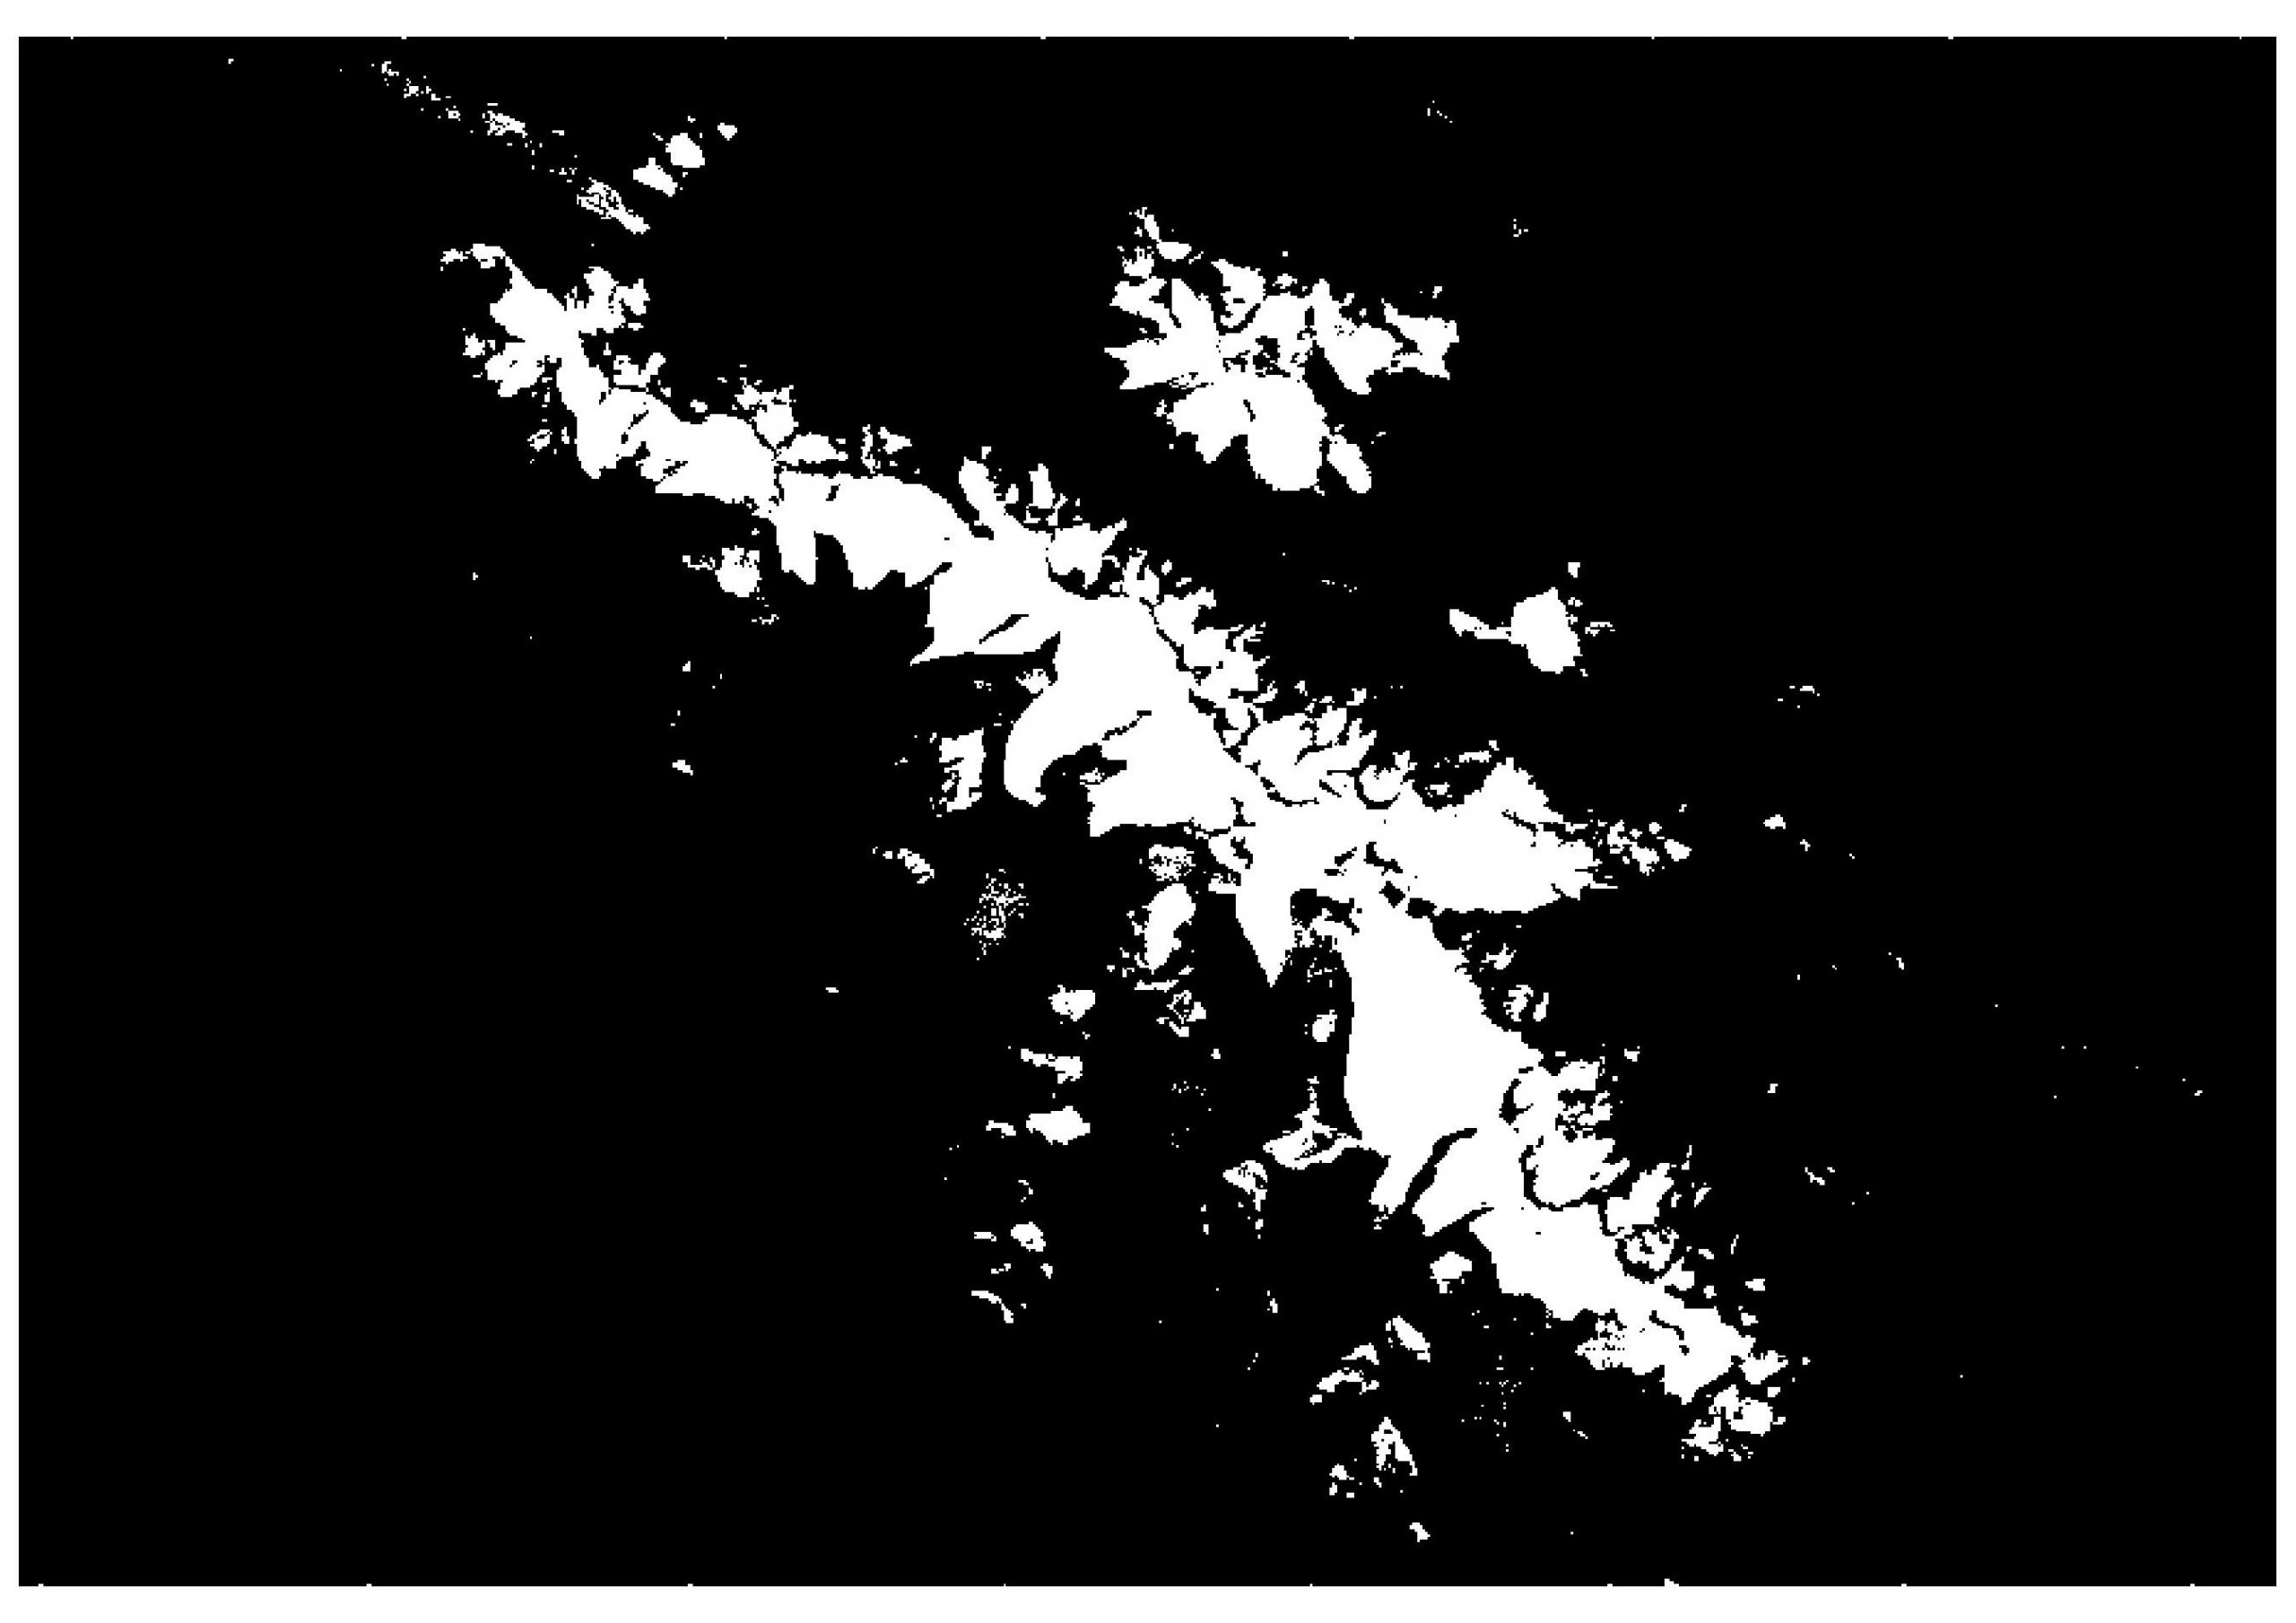 Figure 7: Reclassified image of snow cover.